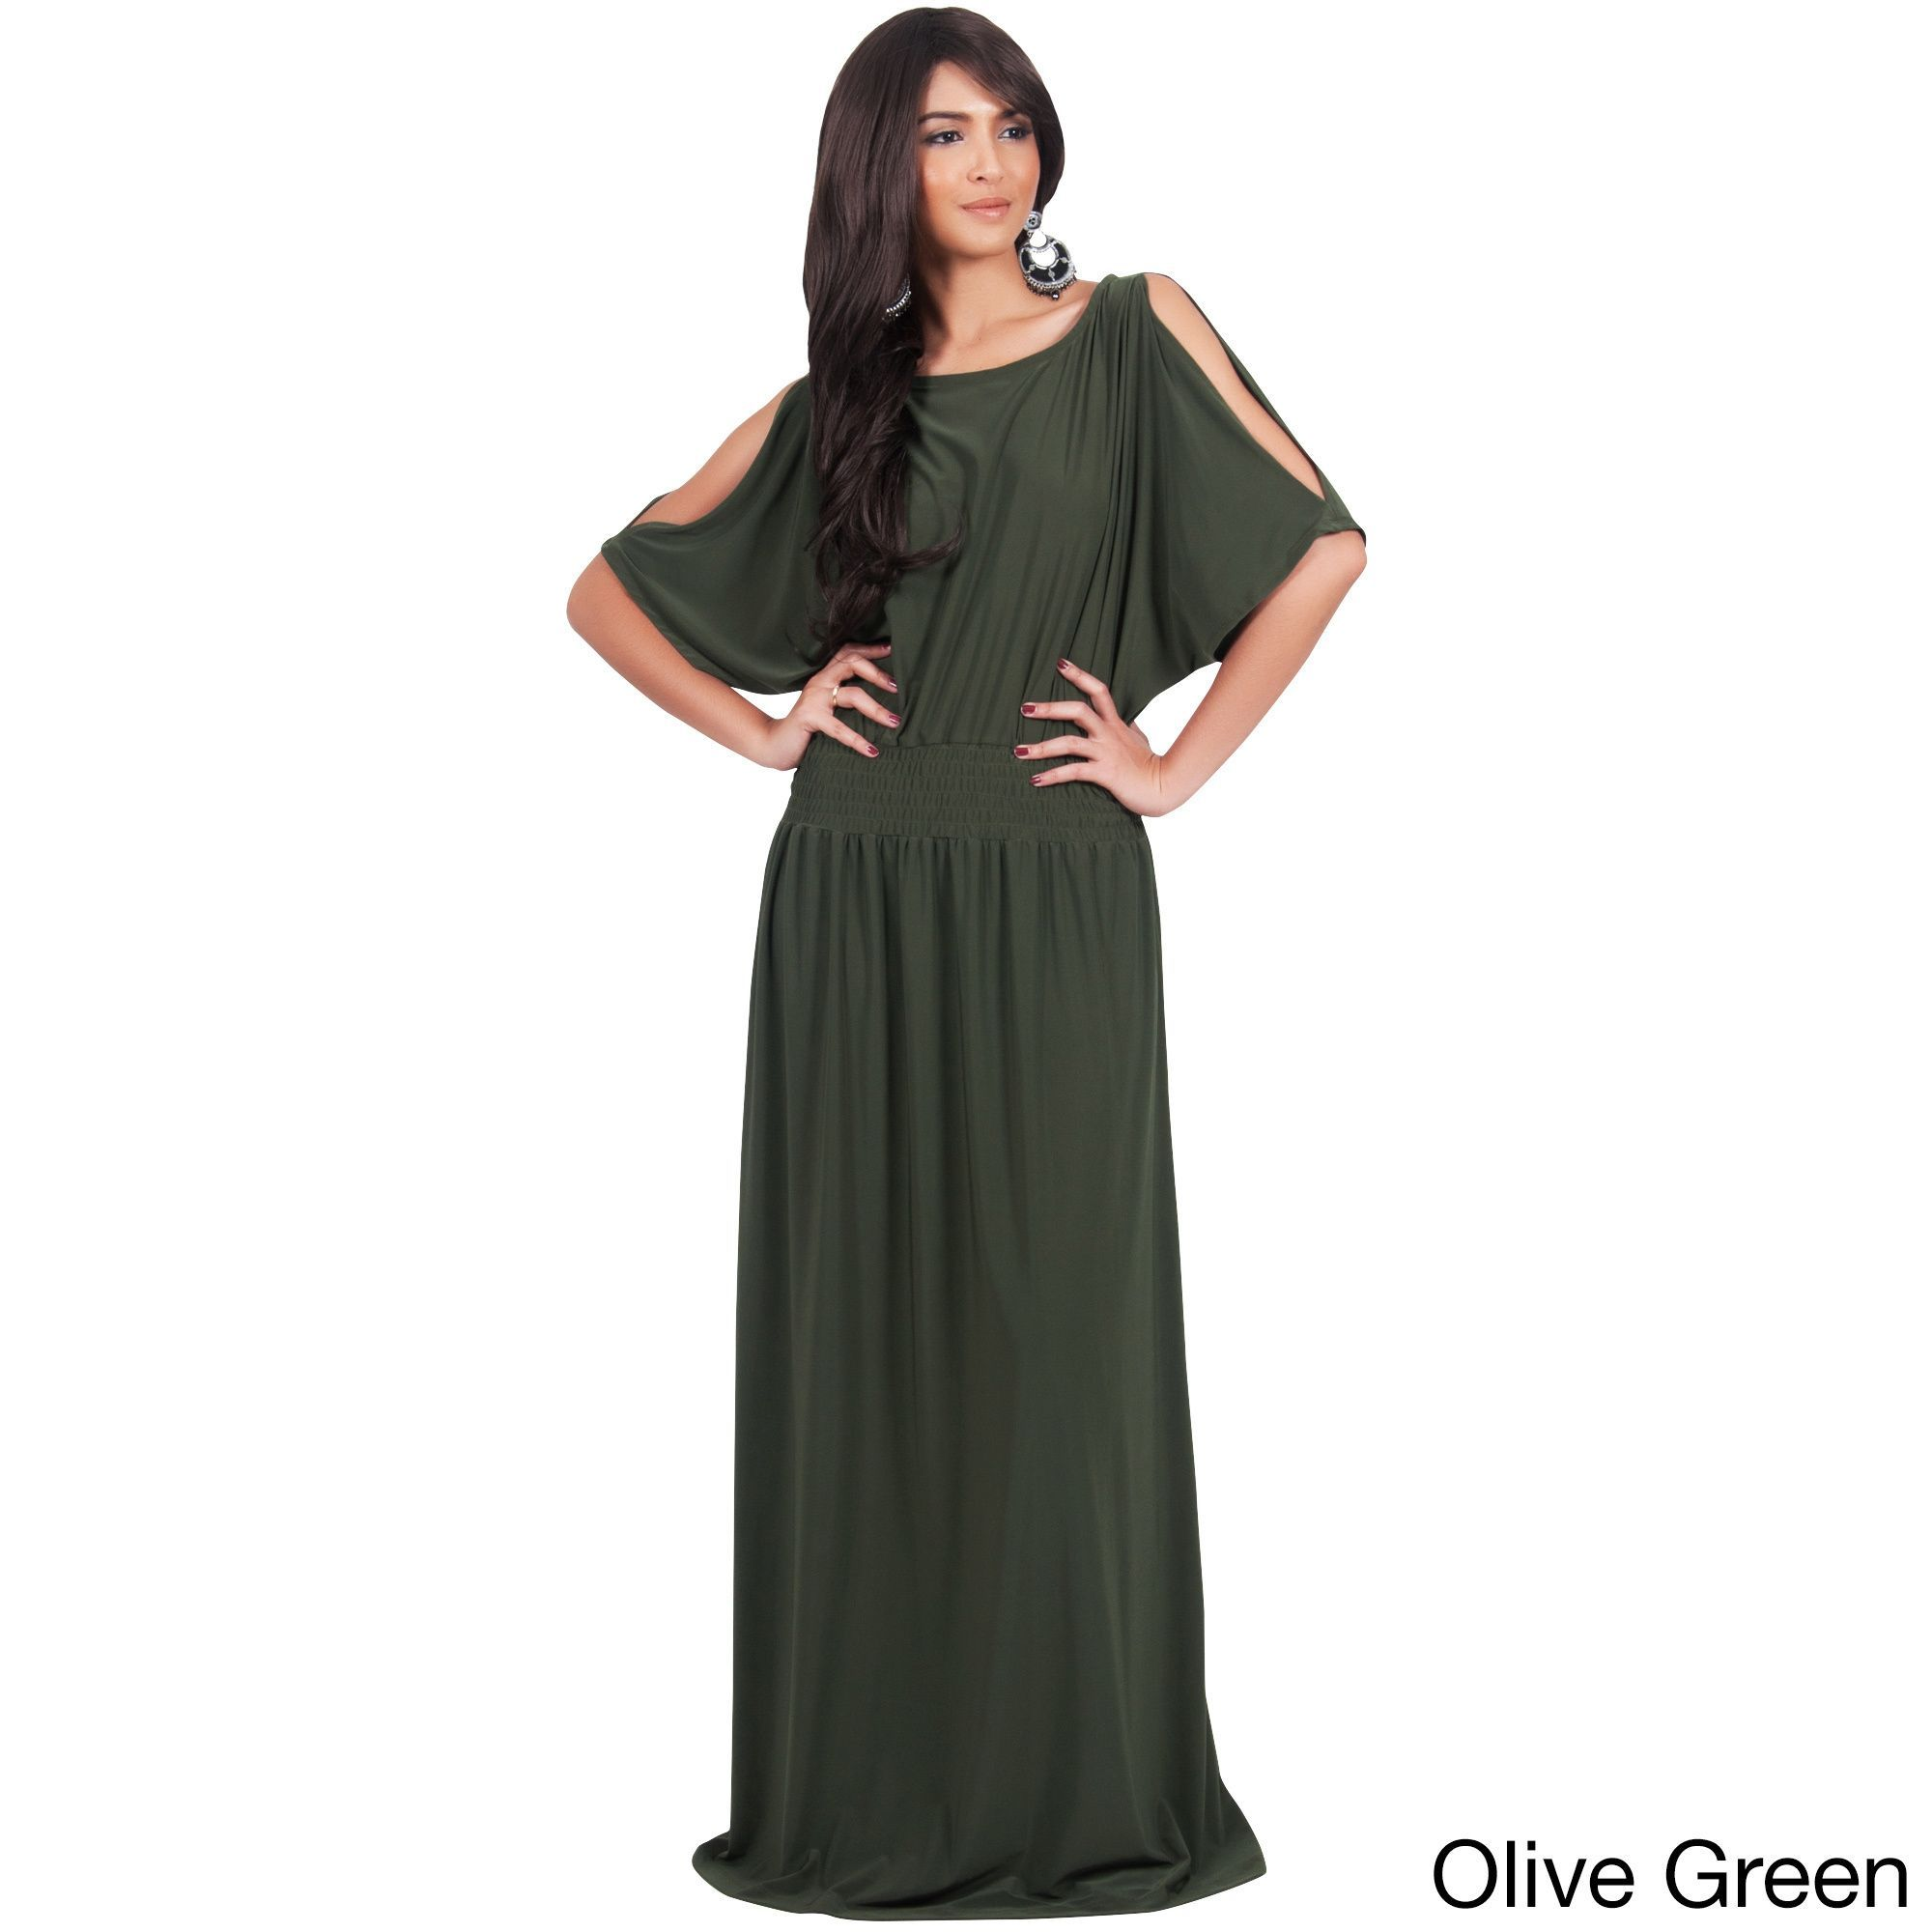 Global koh koh womenus split sleeves cocktail long gown maxi dress